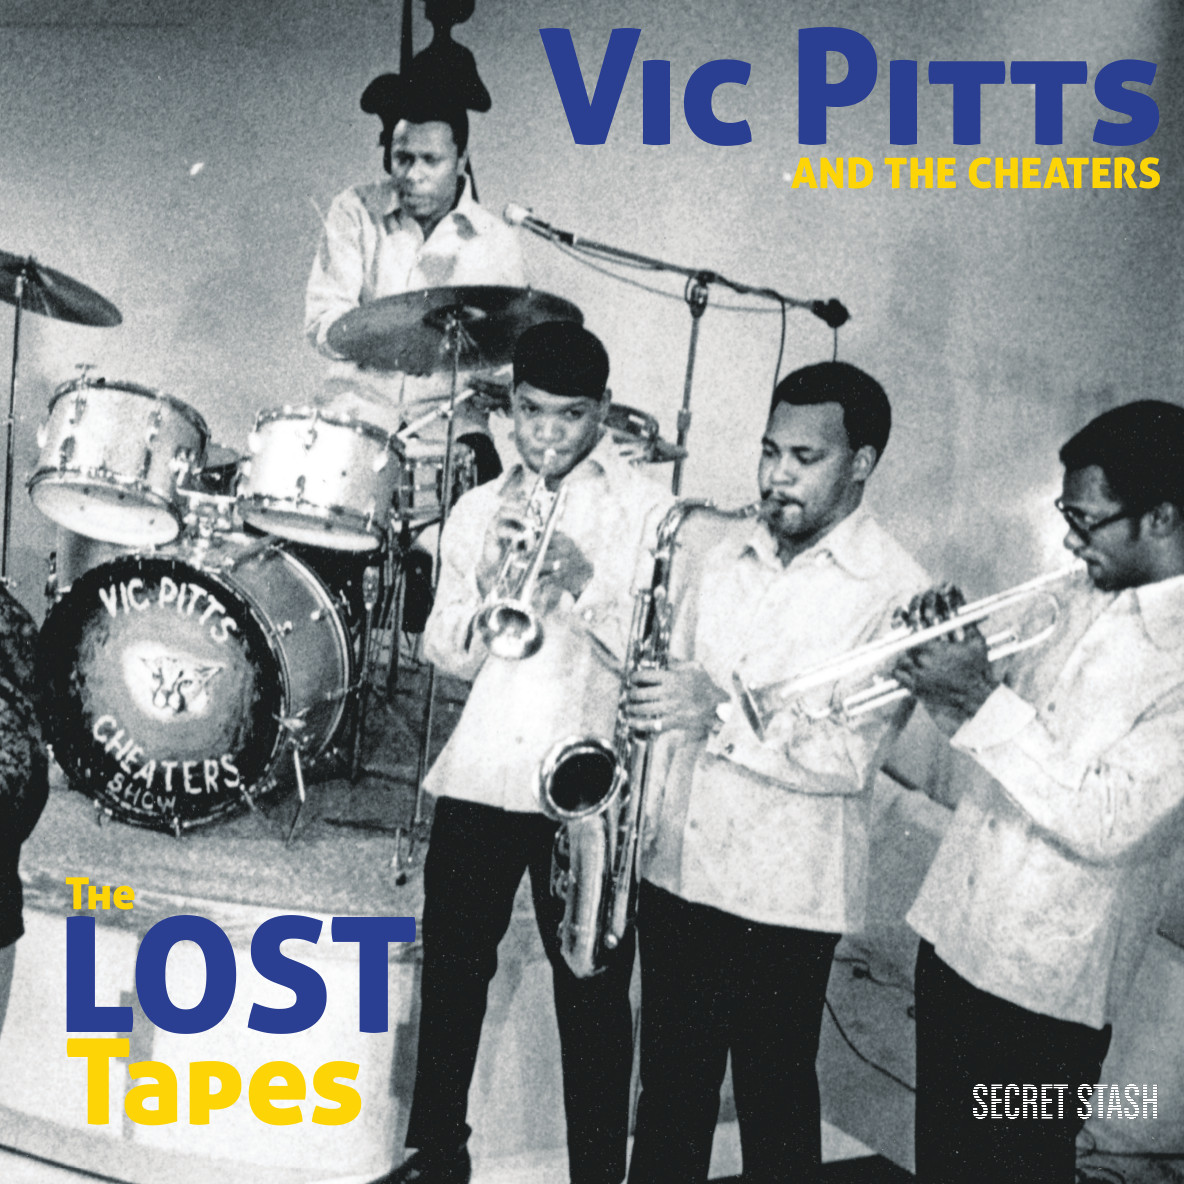 Vic Pitts & The Cheaters/LOST TAPES LP